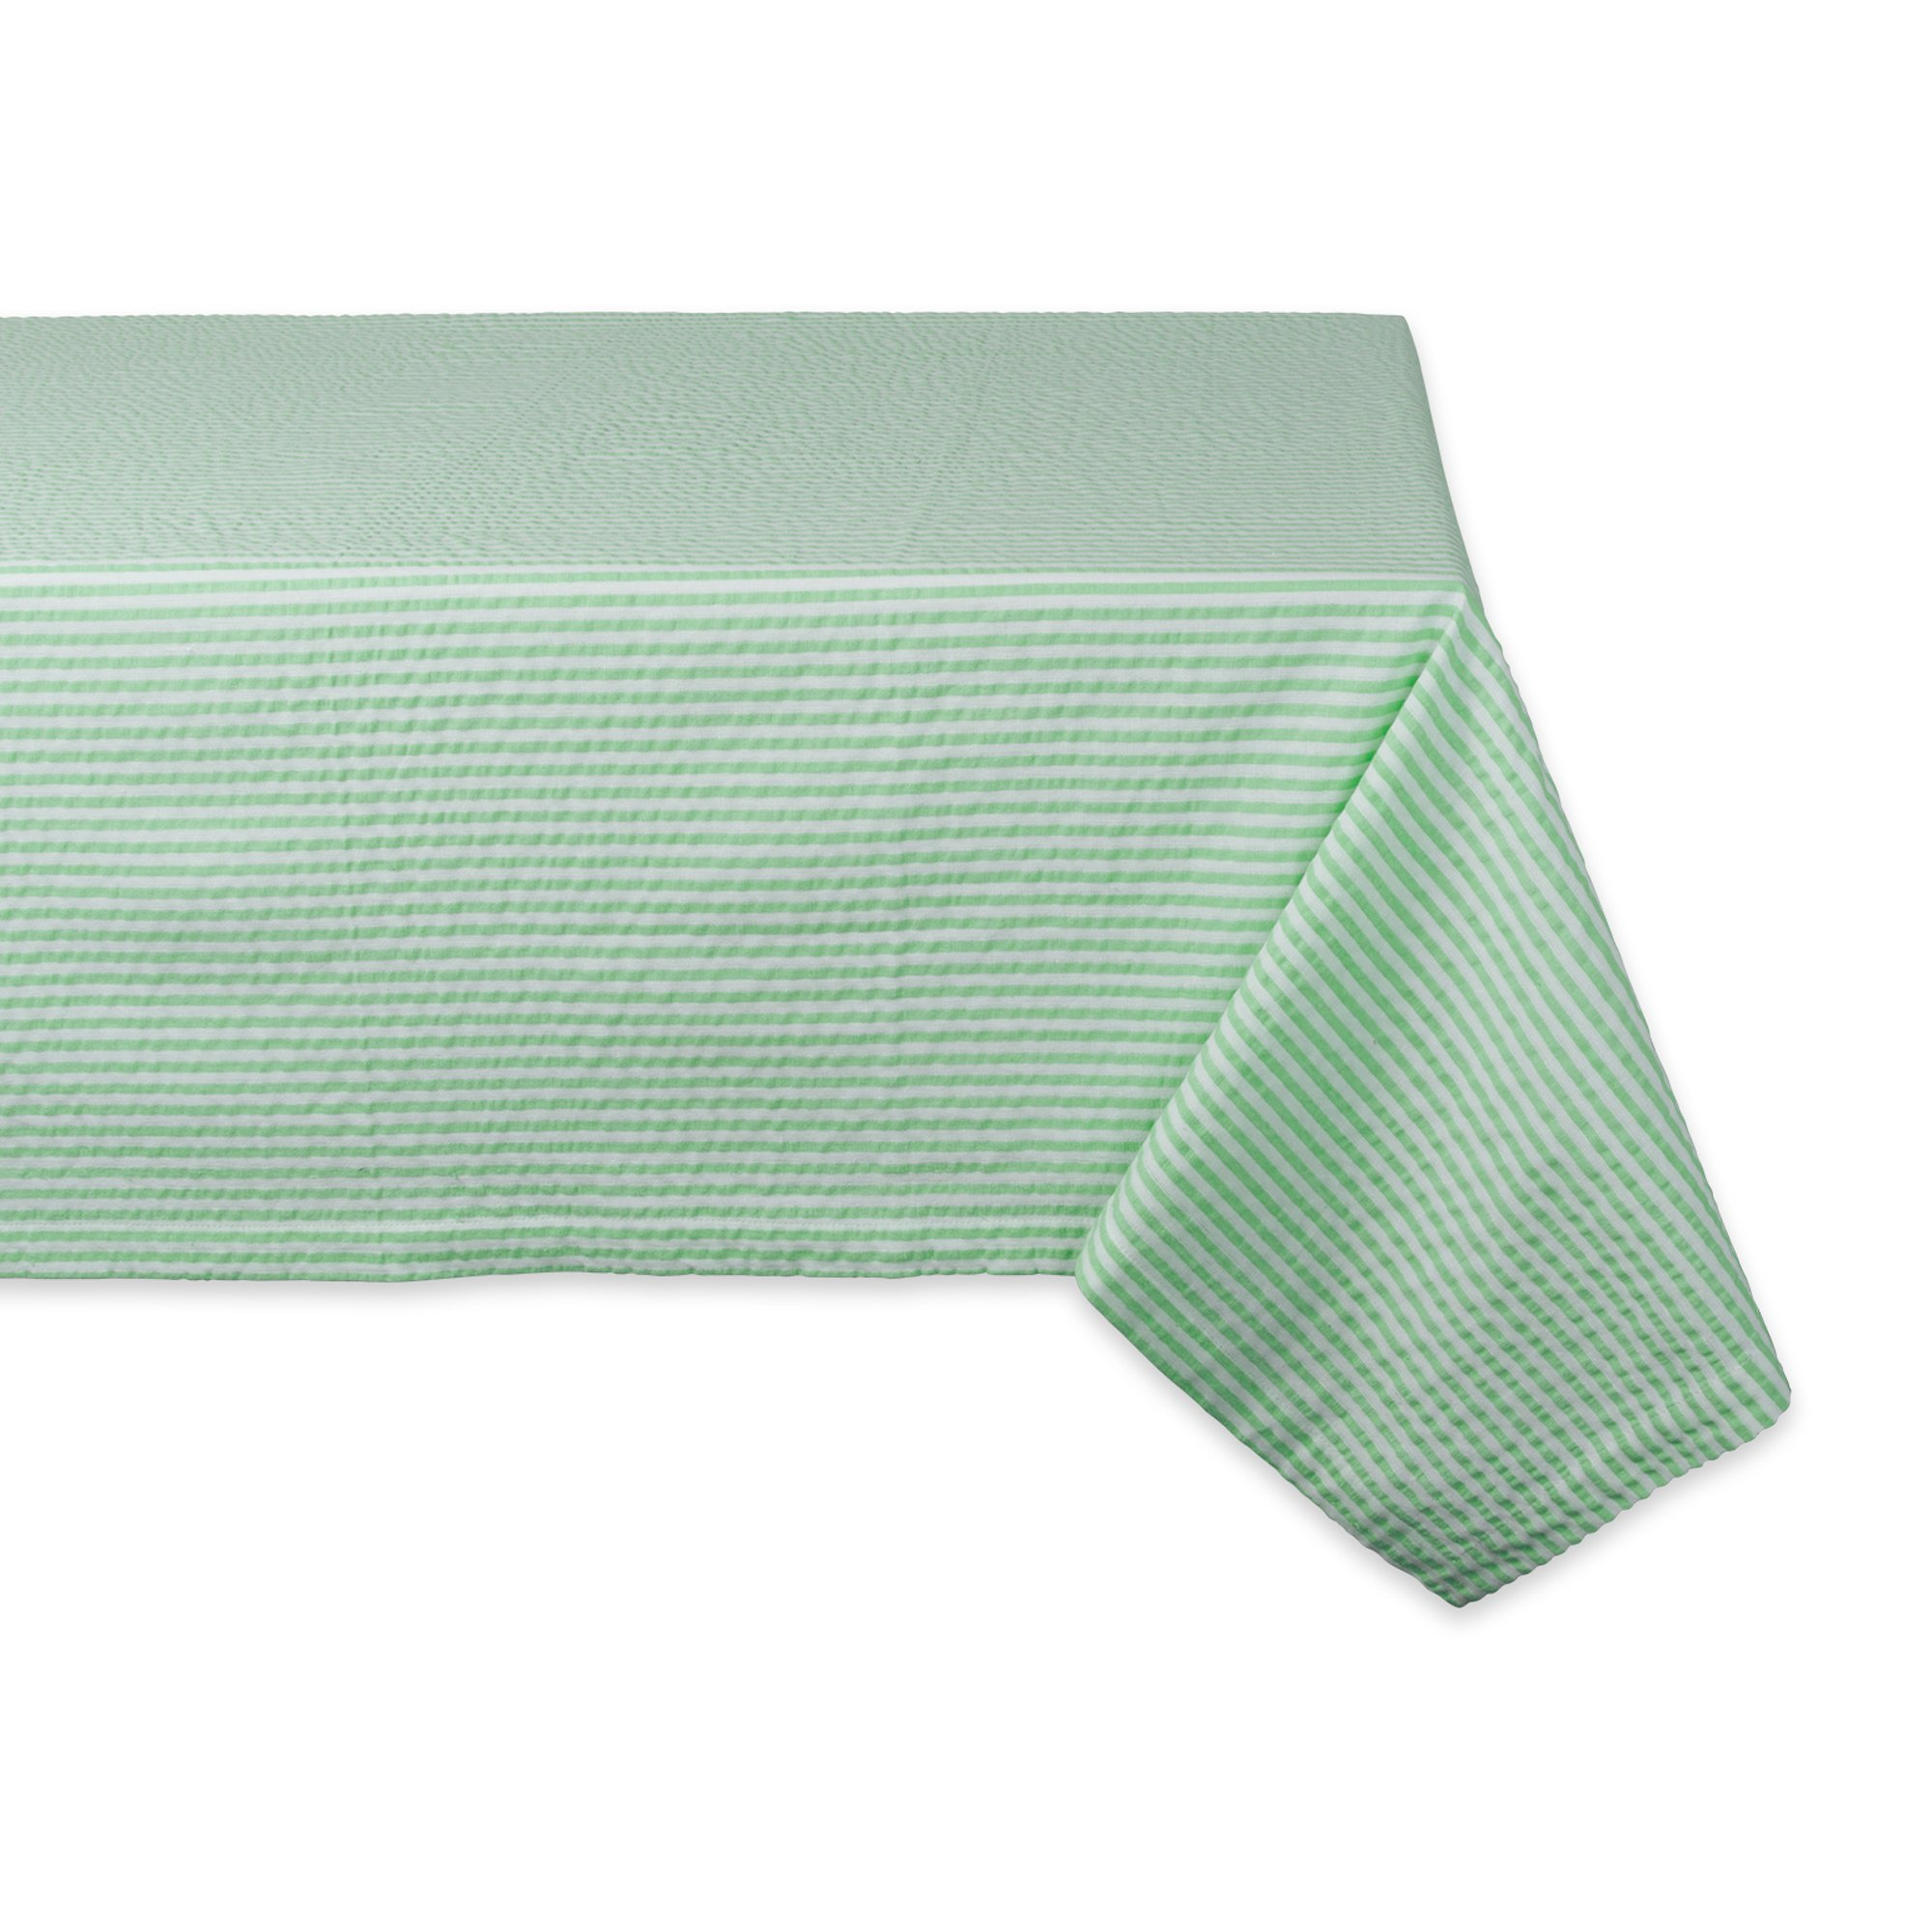 DII Cotton Seersucker Striped Tablecloth for Weddings, Picnics, Summer Parties and Everyday Use, 60x84'', Bright Green and White